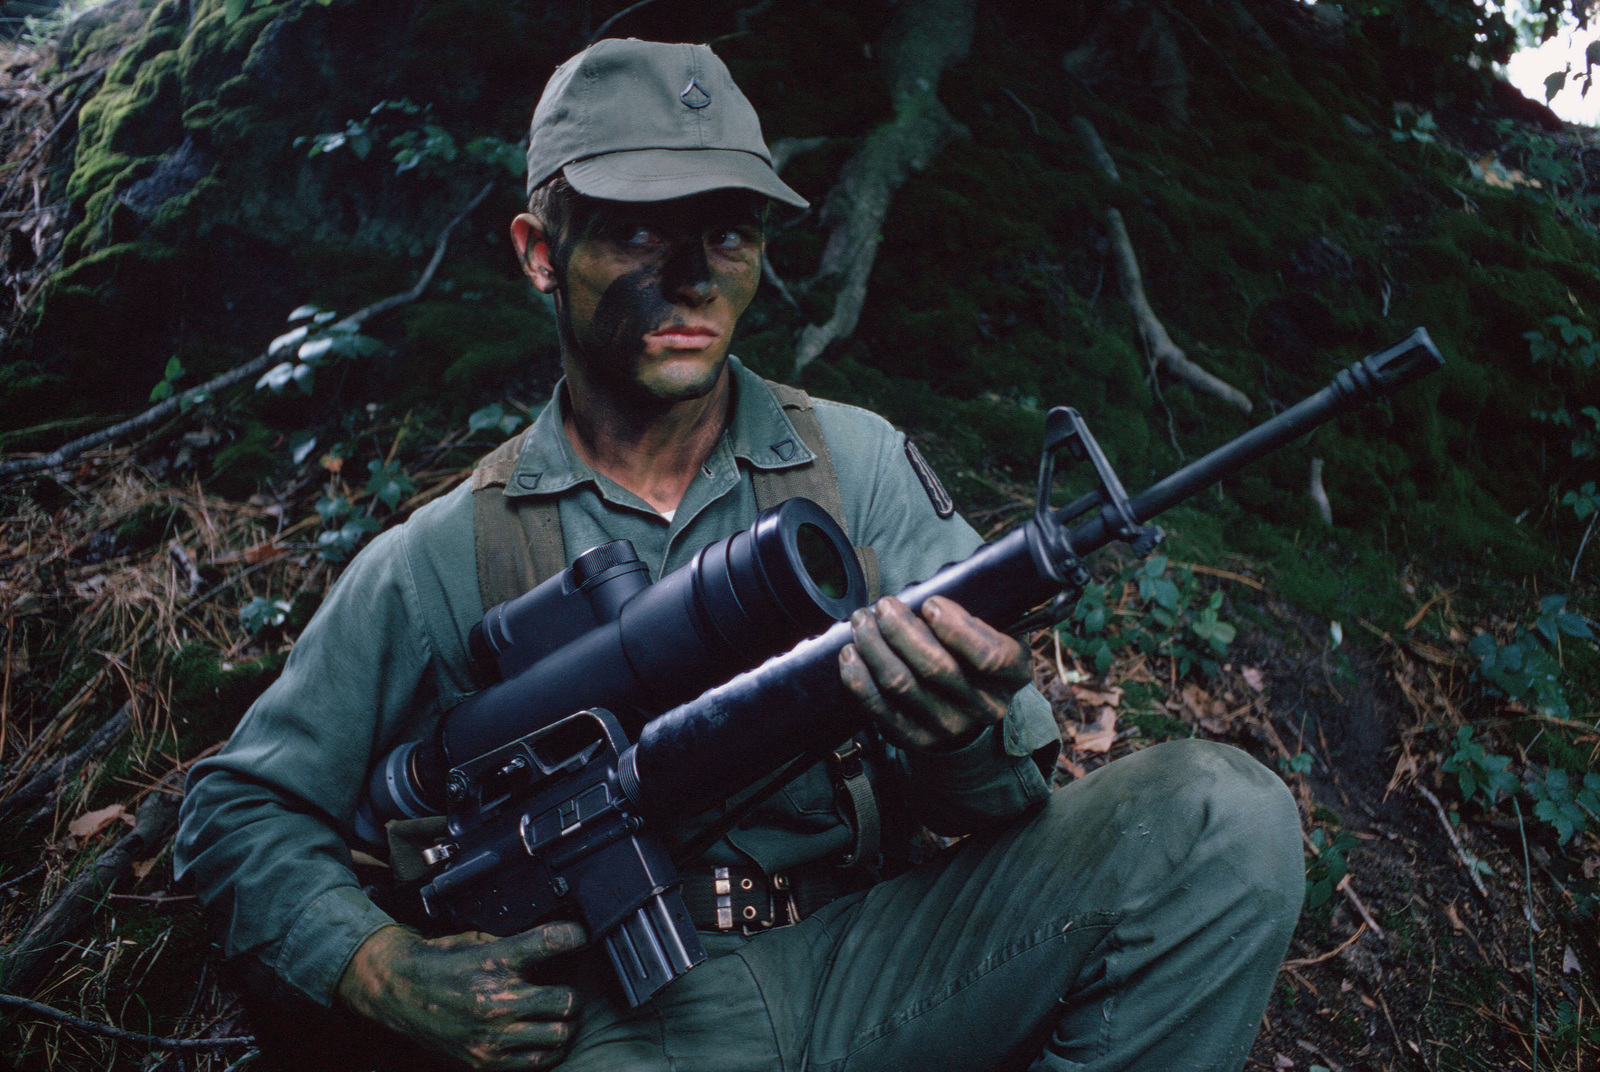 An infantryman armed with an M16A1 rifle and an AN/PVS-2 Starlight scope for use at night